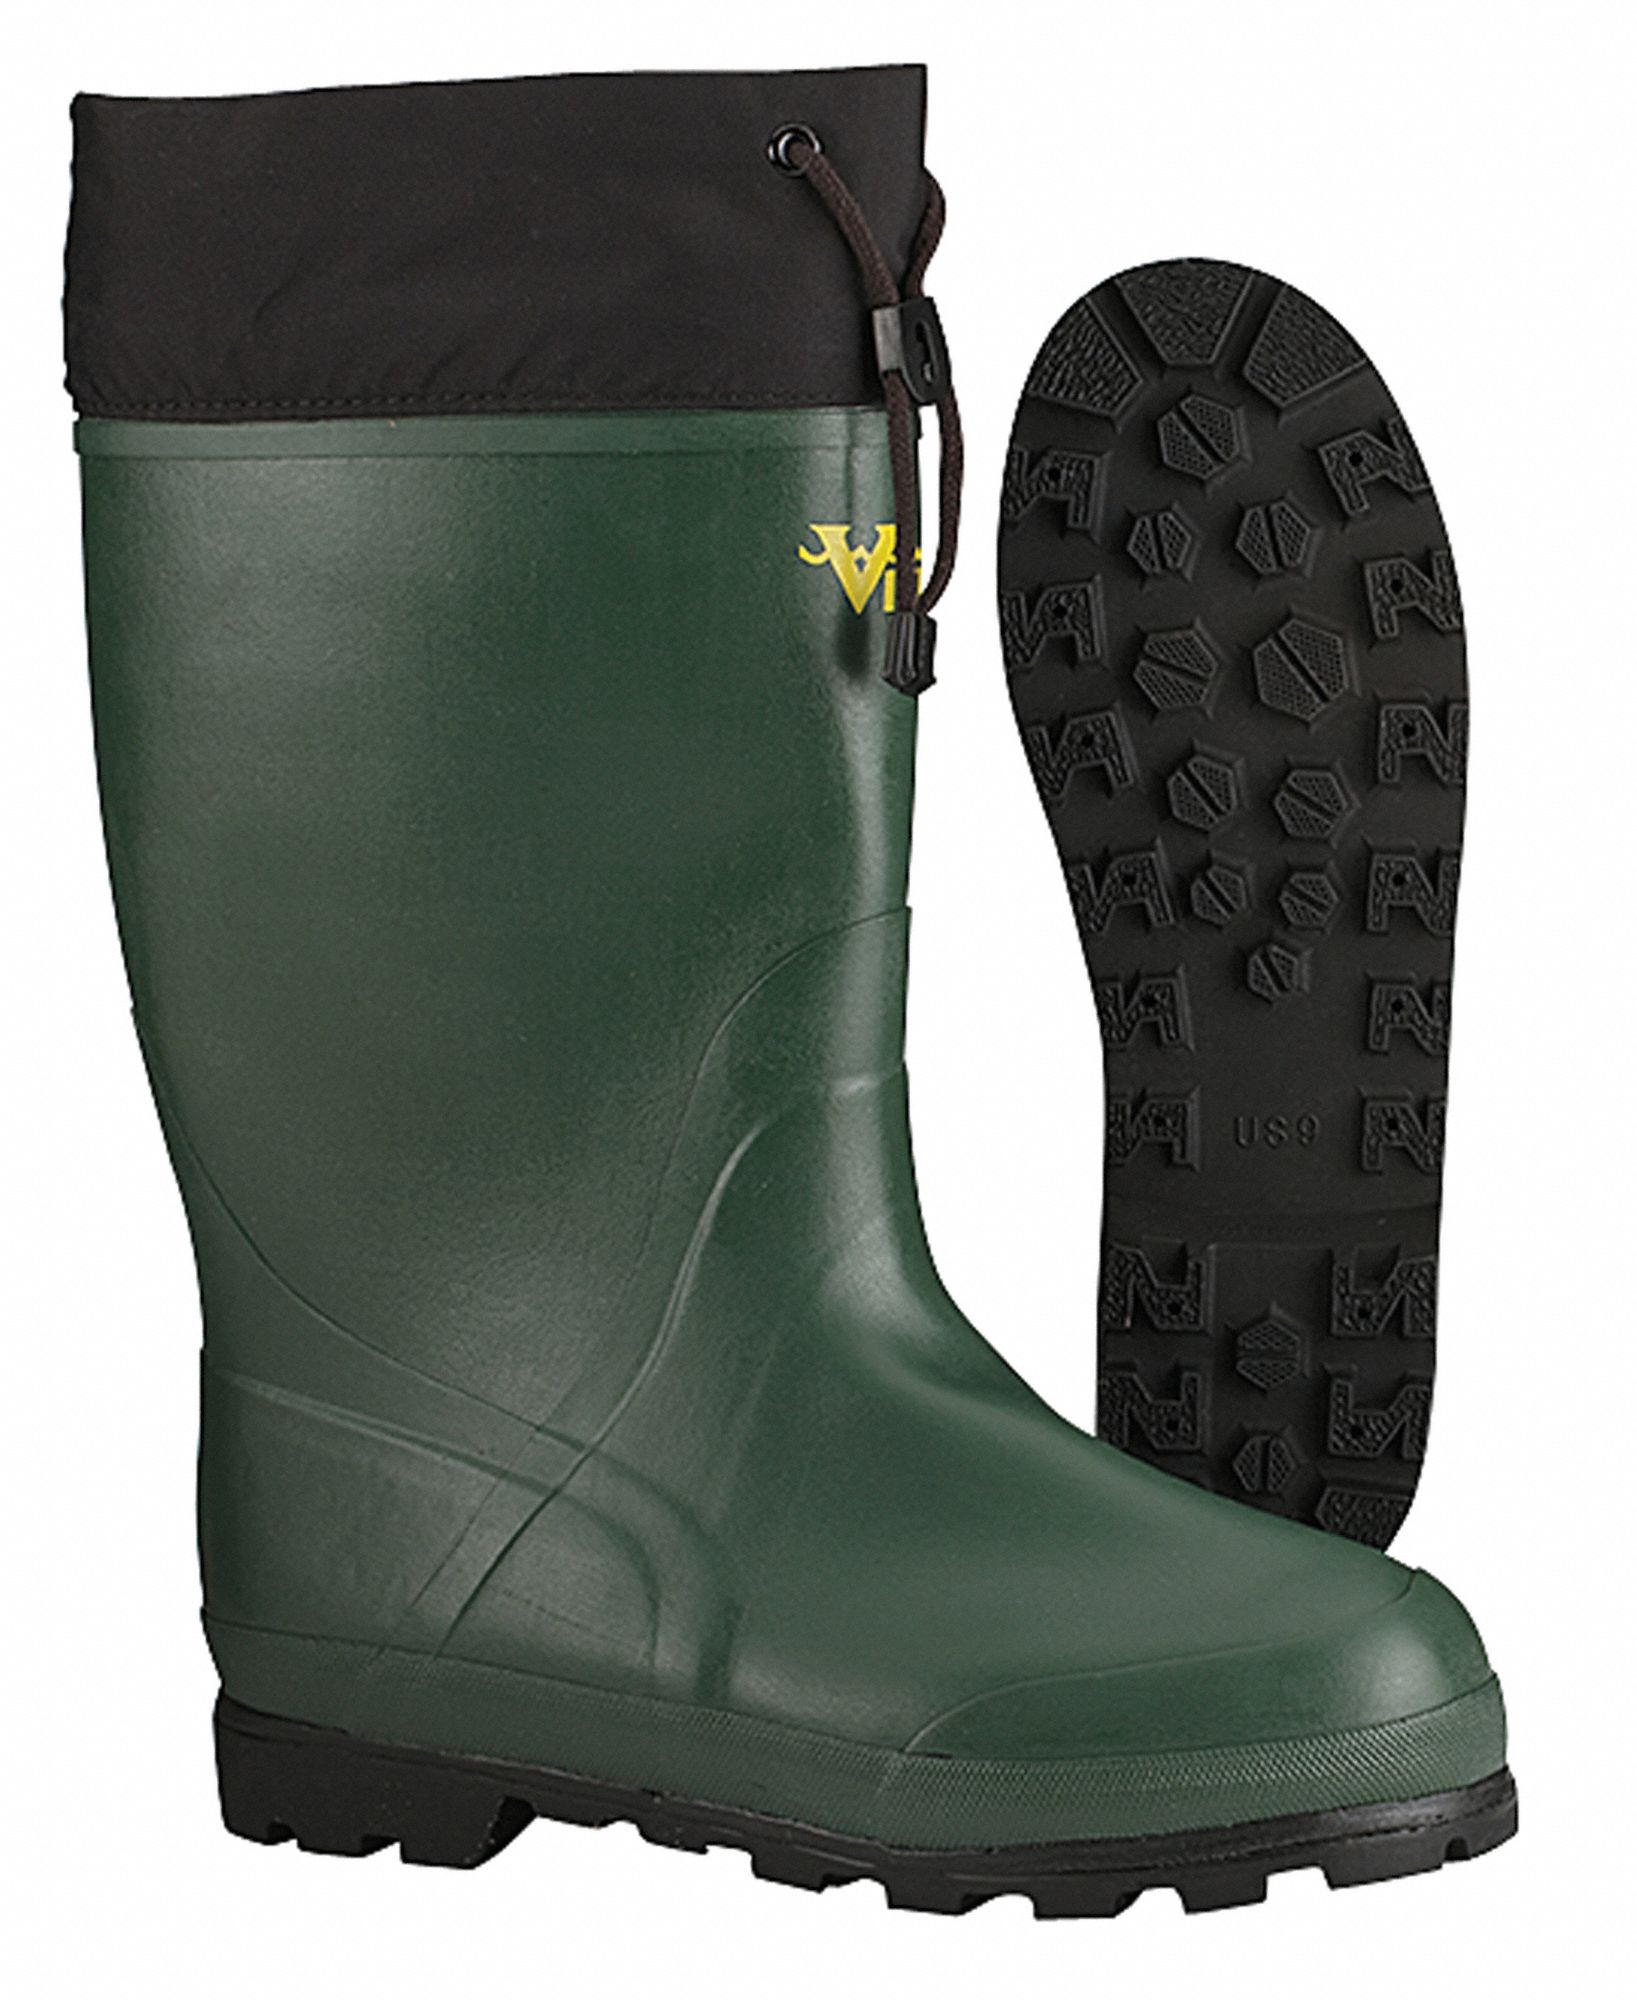 Plain-toe Pvc And Rubber Boots